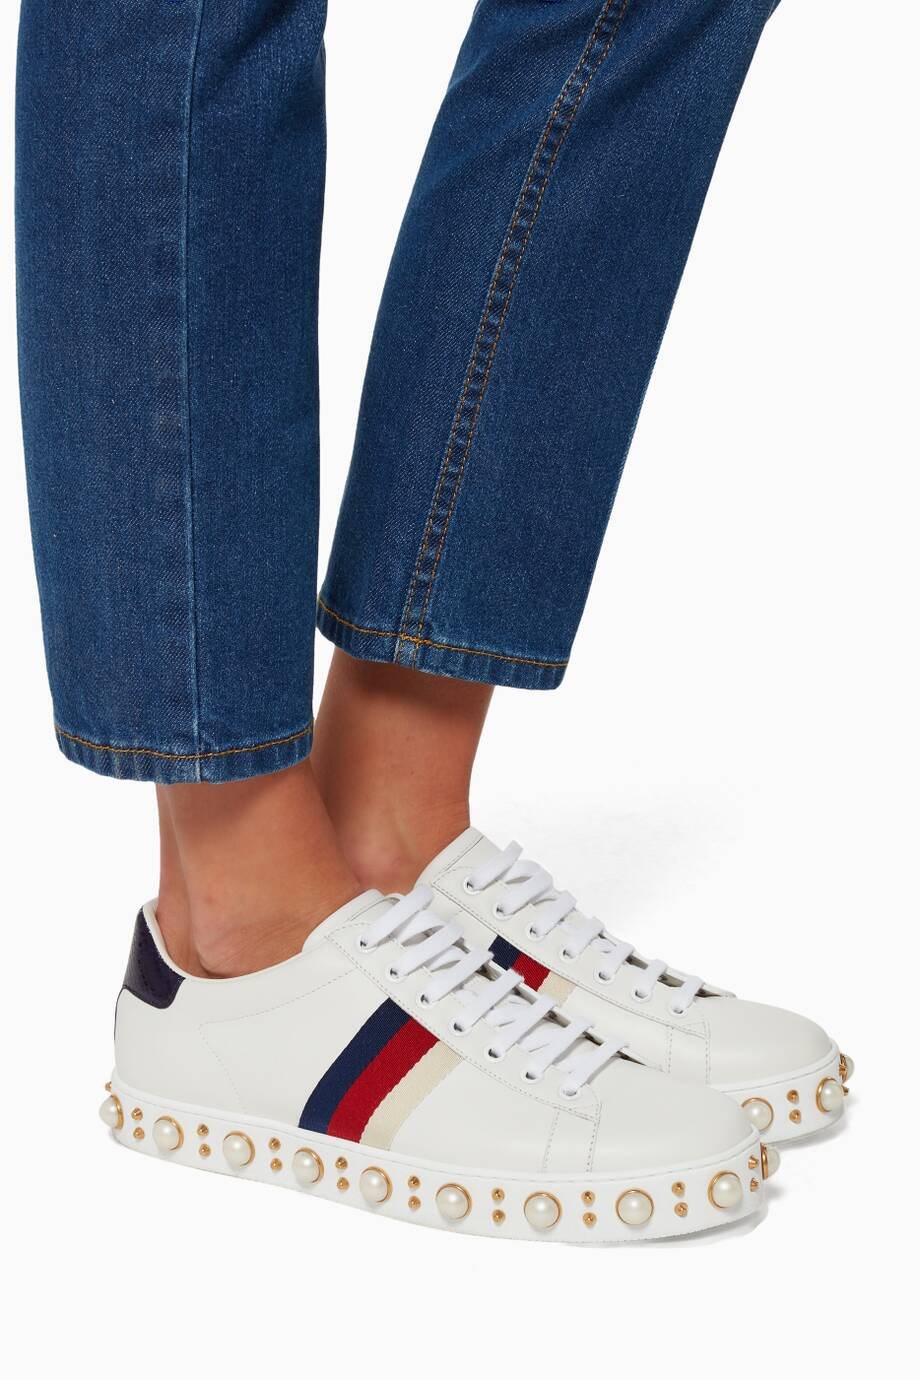 c0499a53f8c Shop Luxury Gucci White Ace Studded Low-top Sneaker